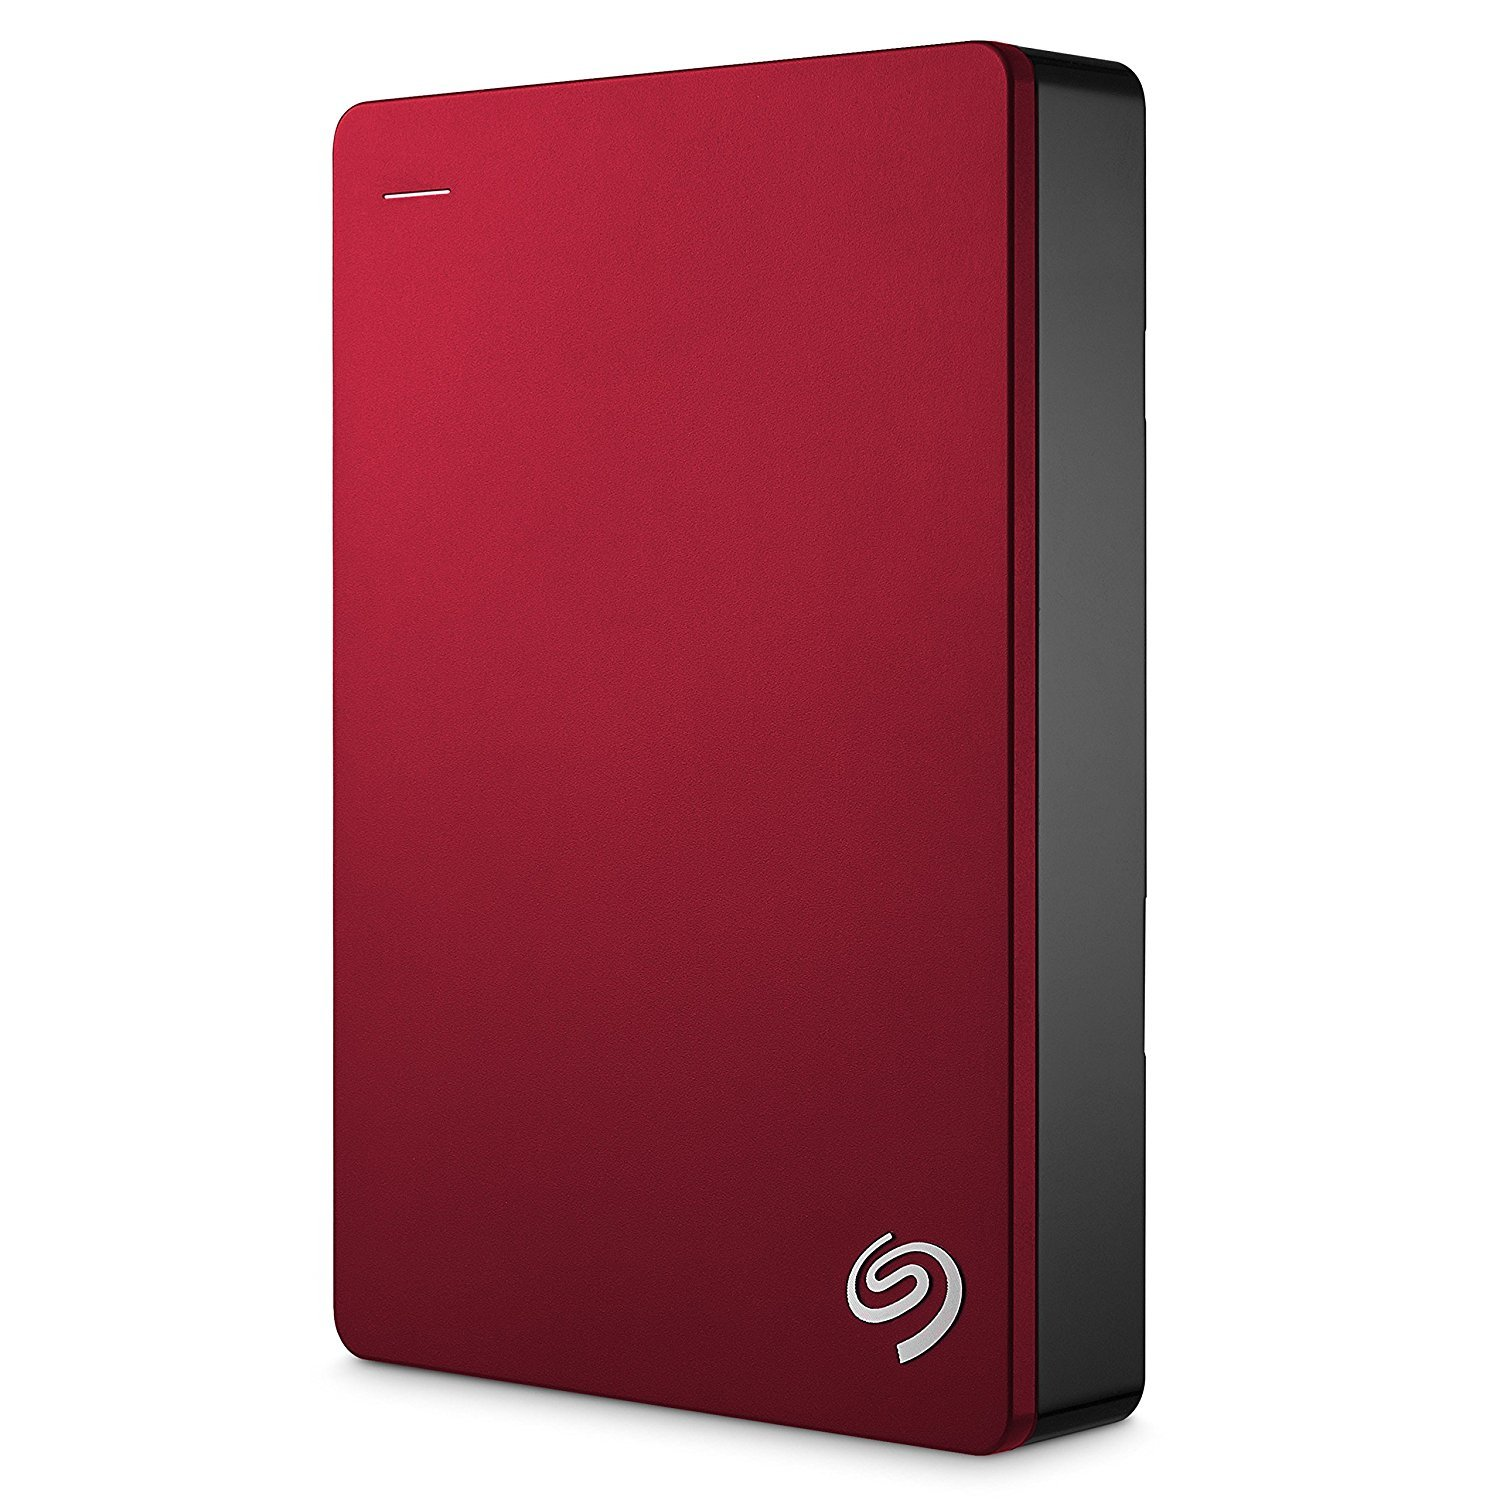 Seagate Backup Plus Slim Portable, External Mobile Hard Drive USB 3.0, 2,5 inch for PC & MAC & PS4 (Renewed), Capacity:1.000GB (1TB), Color Black by Seagate (Image #1)